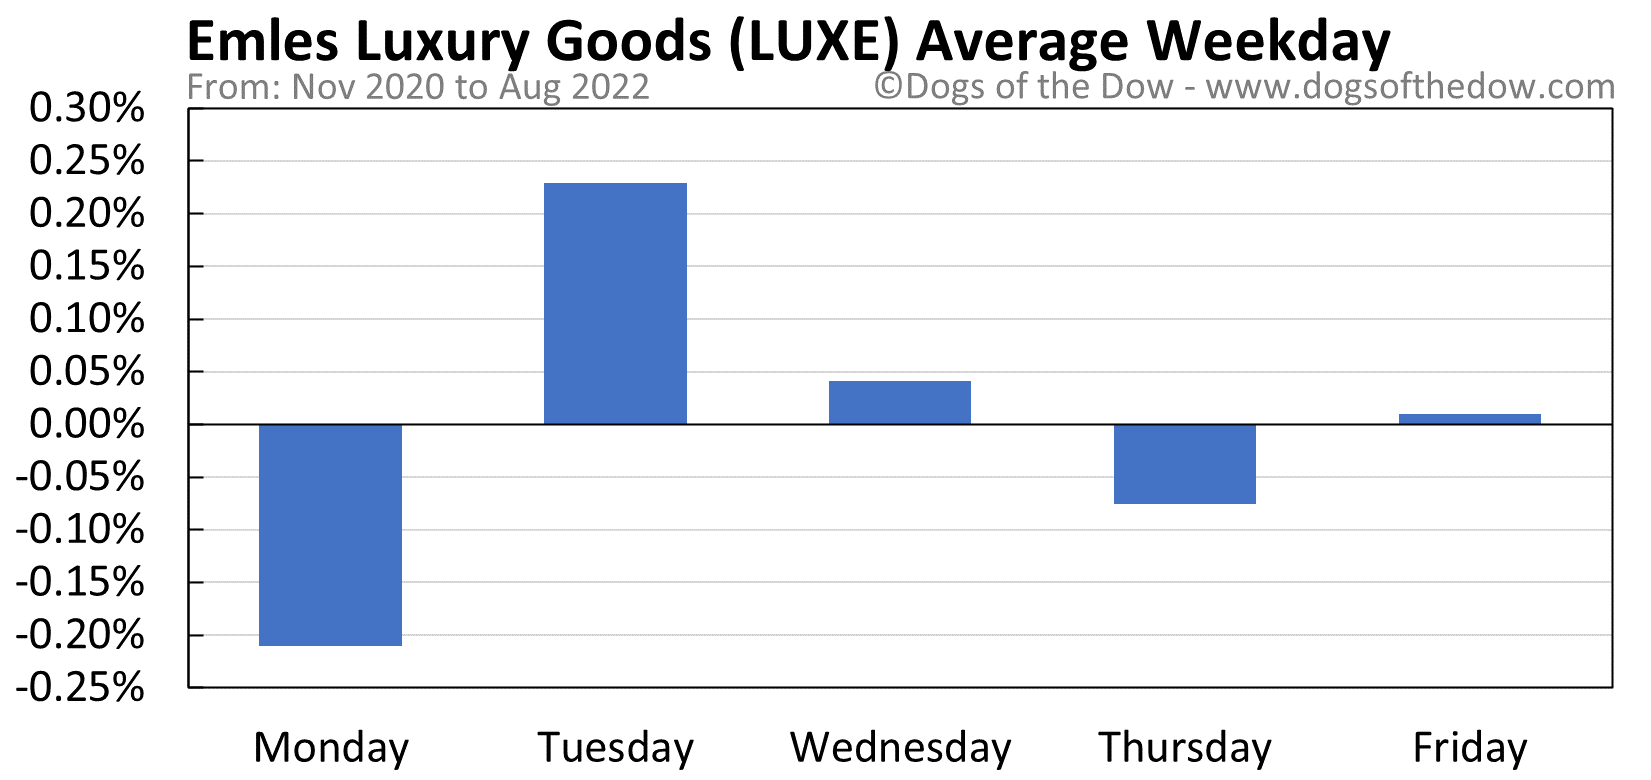 LUXE average weekday chart